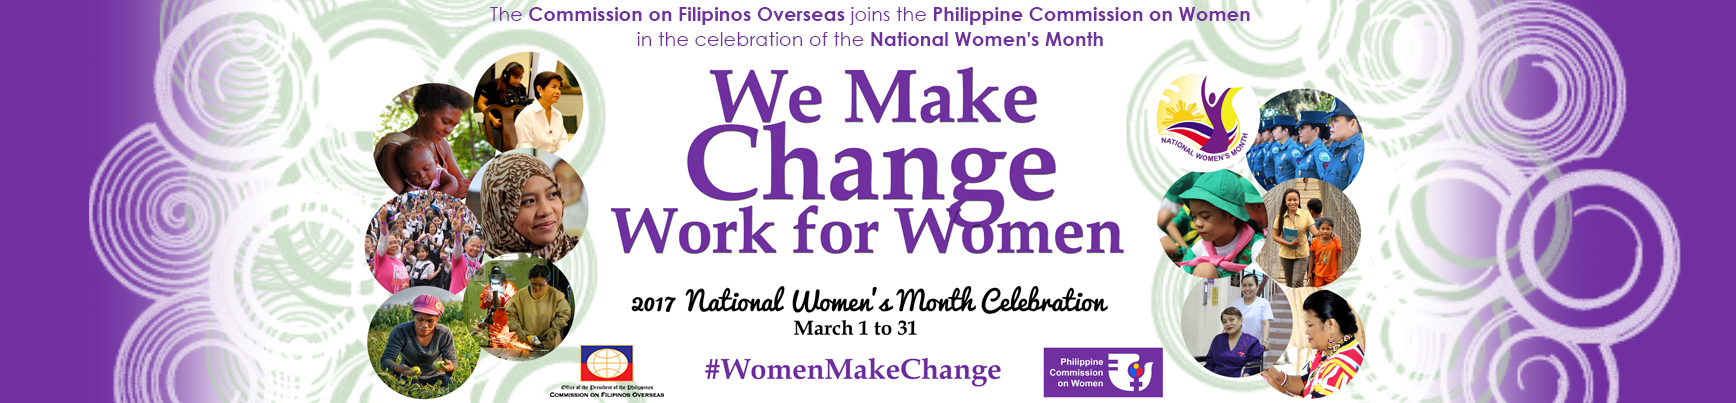 National Women's Month Celebration 2017